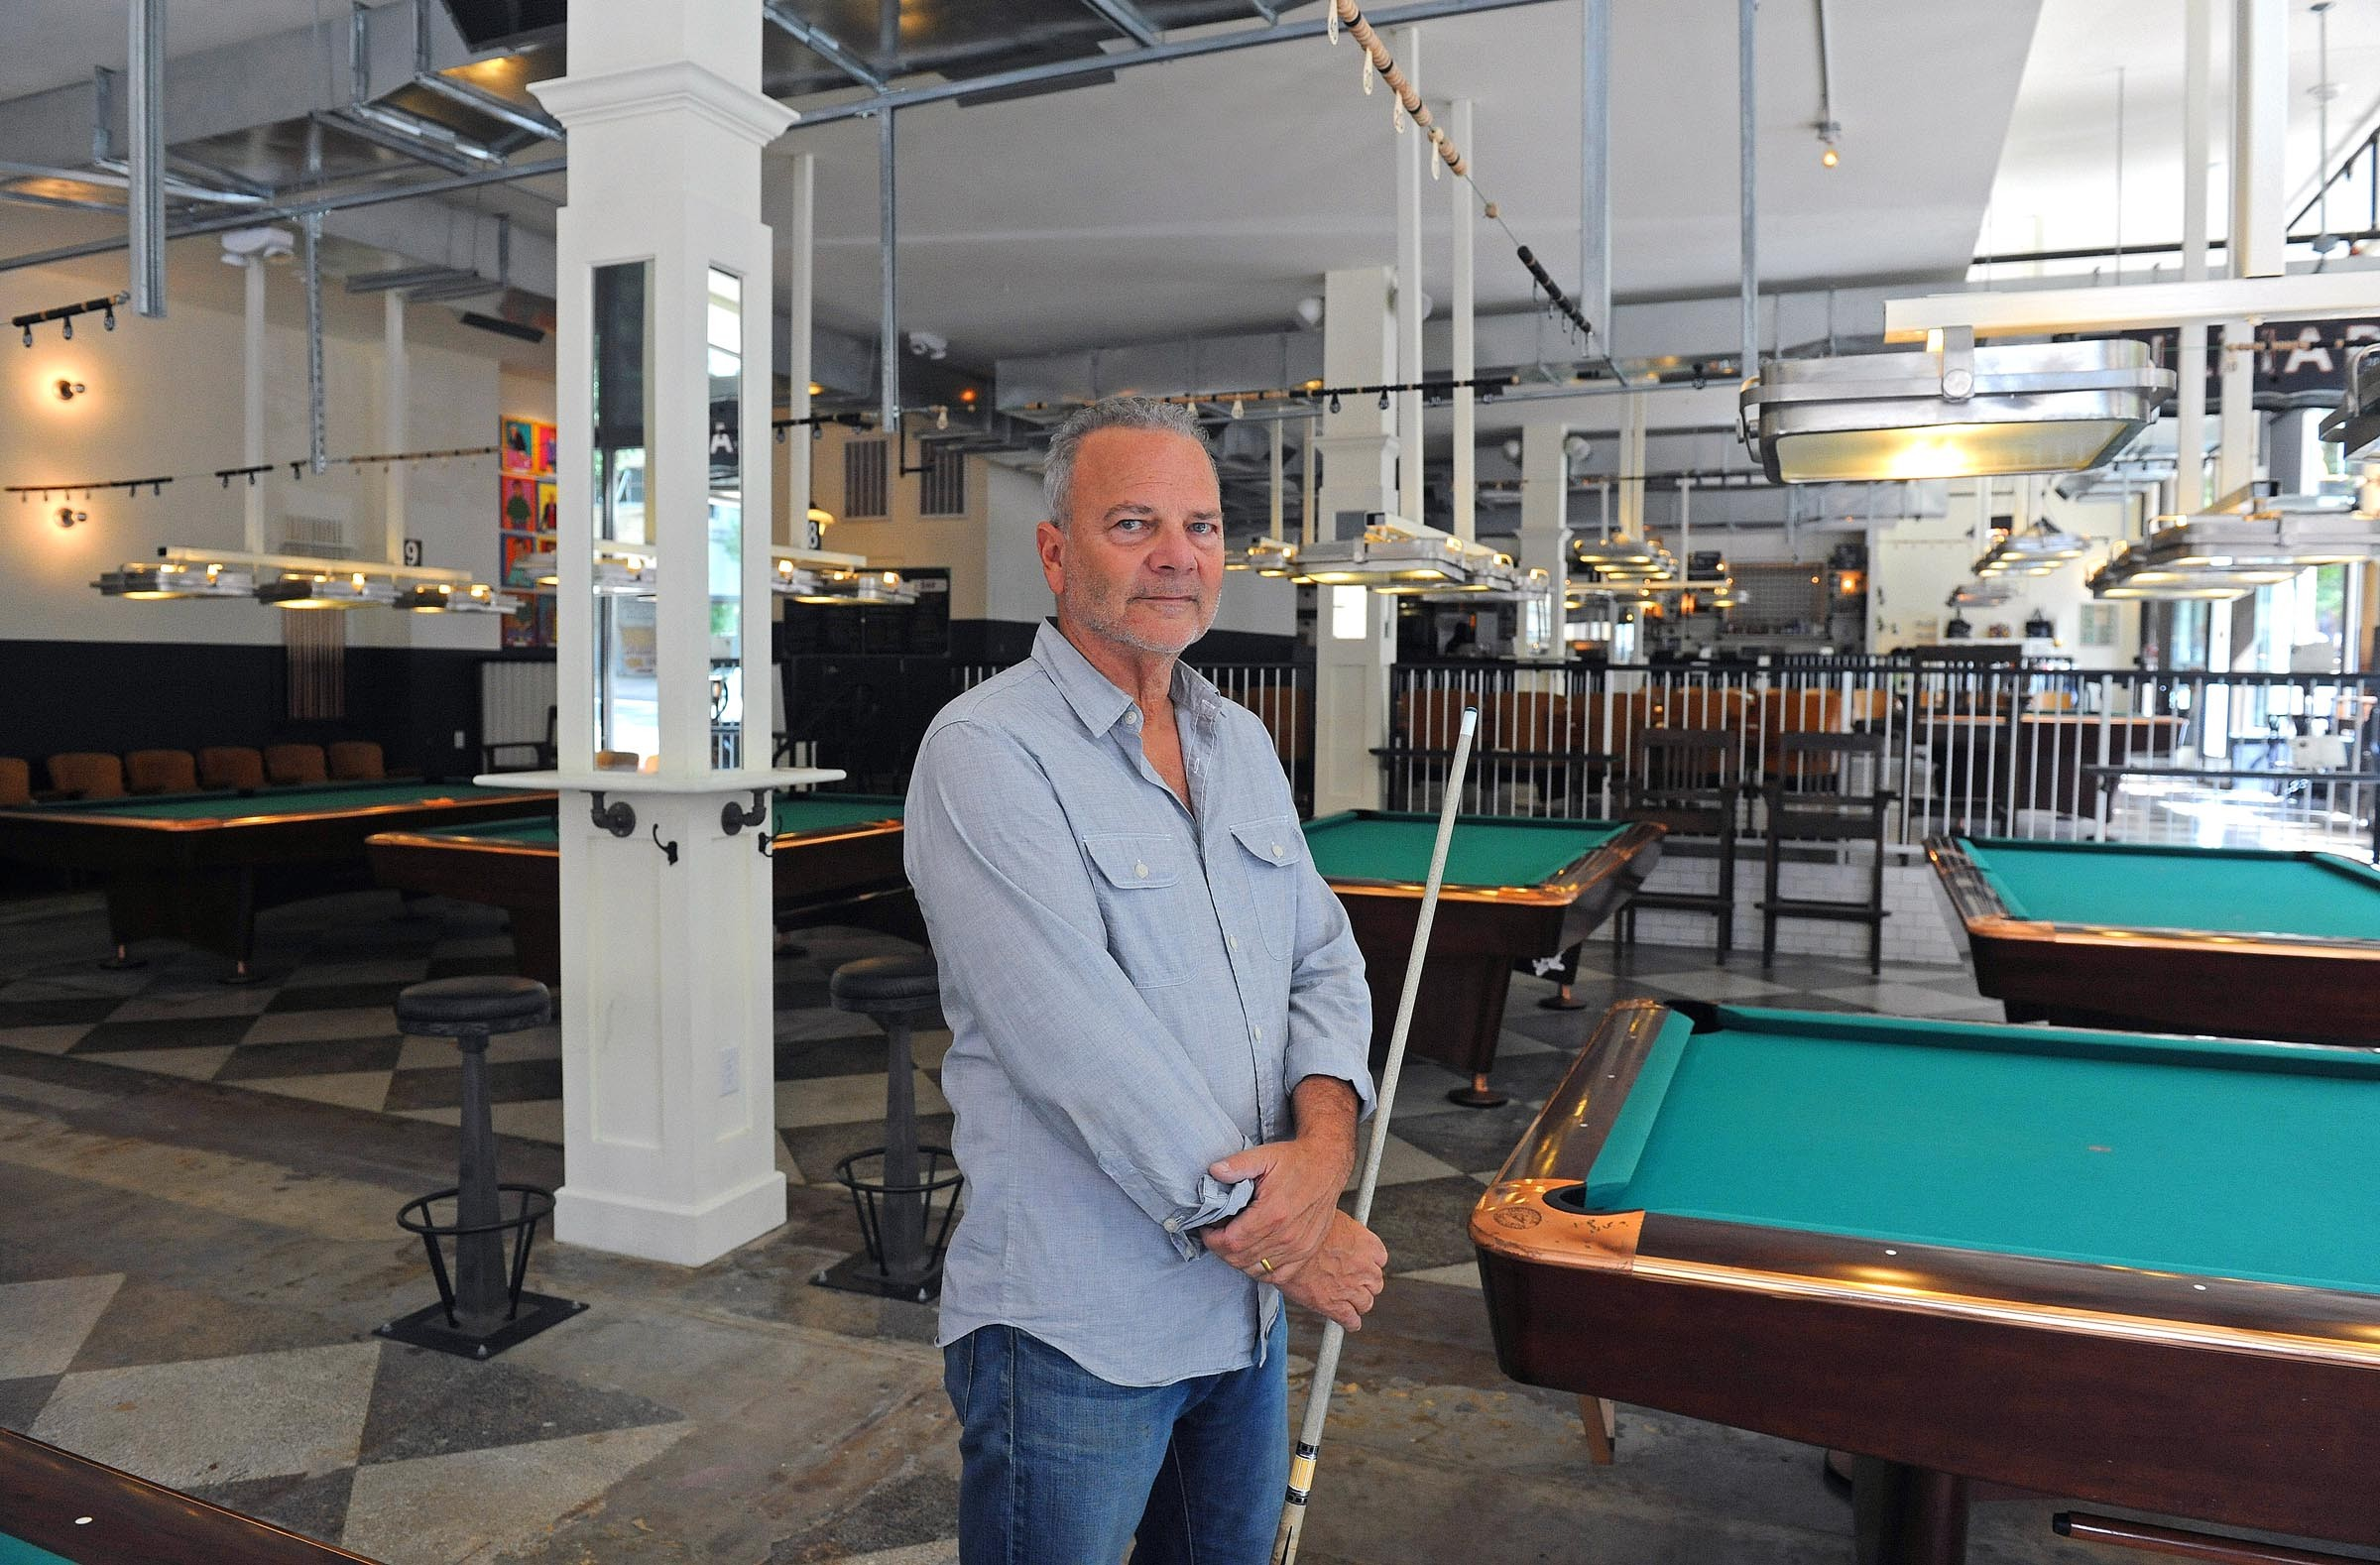 Click To Enlarge Jim Gottier, Owner Of Greenleafu0027s Pool Room In Downtown  Richmond, Calls Straight Pool The